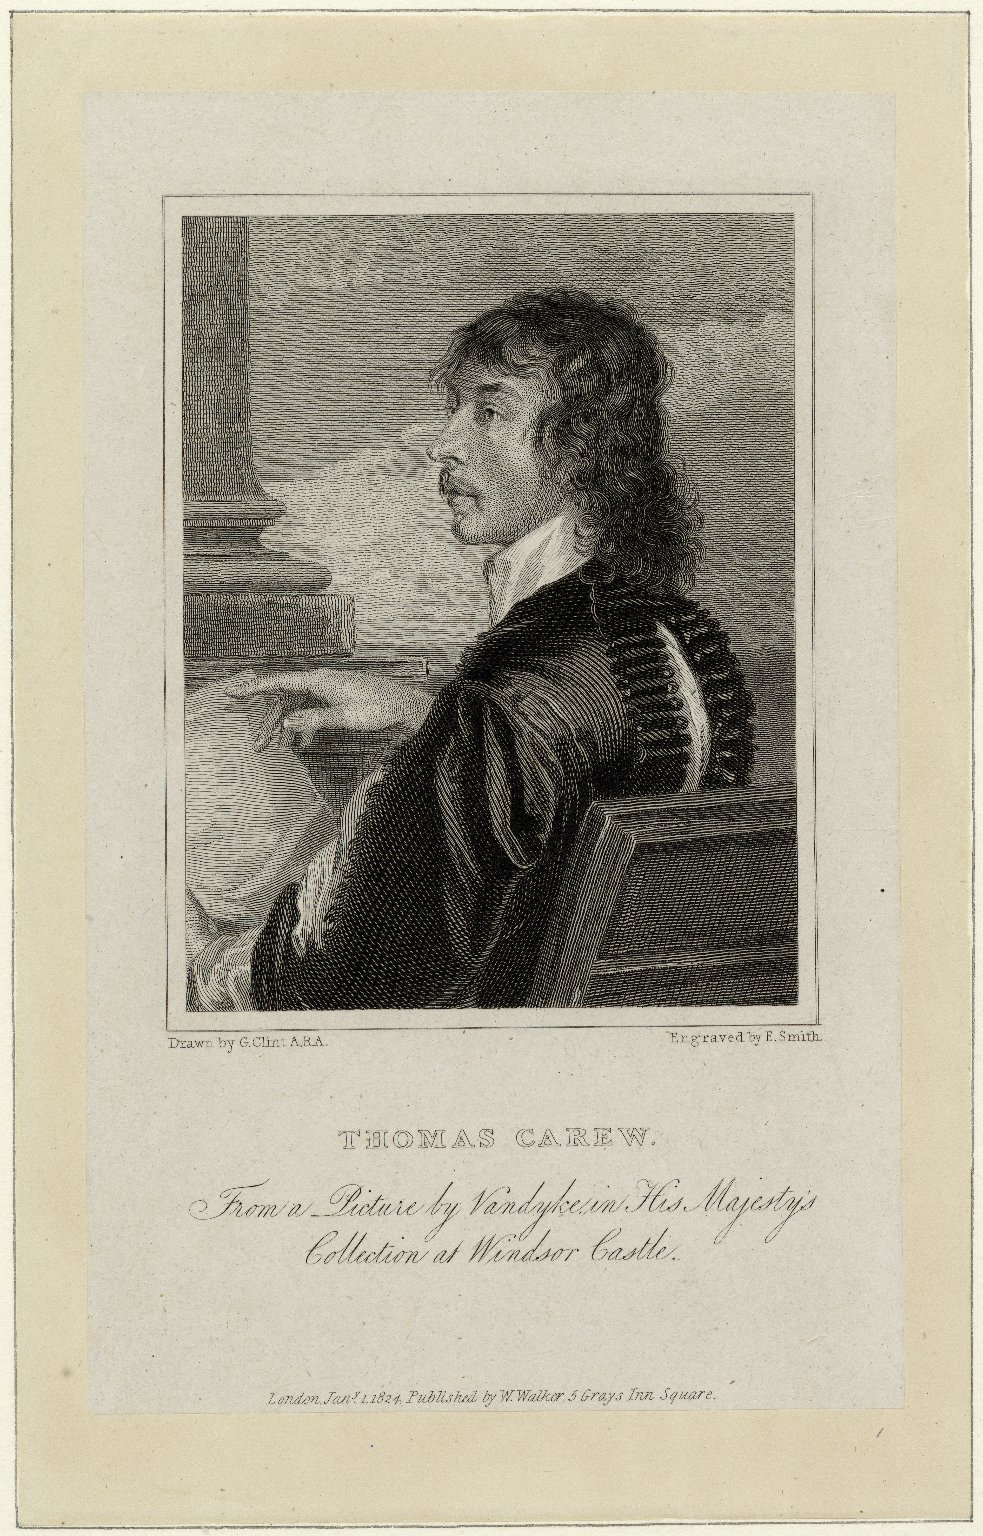 Thomas Carew [graphic] / from a picture by Vandyke in His Majesty's collection at Windsor castle ; drawn by G. Clint, A.R.A. ; engraved by E. Smith.